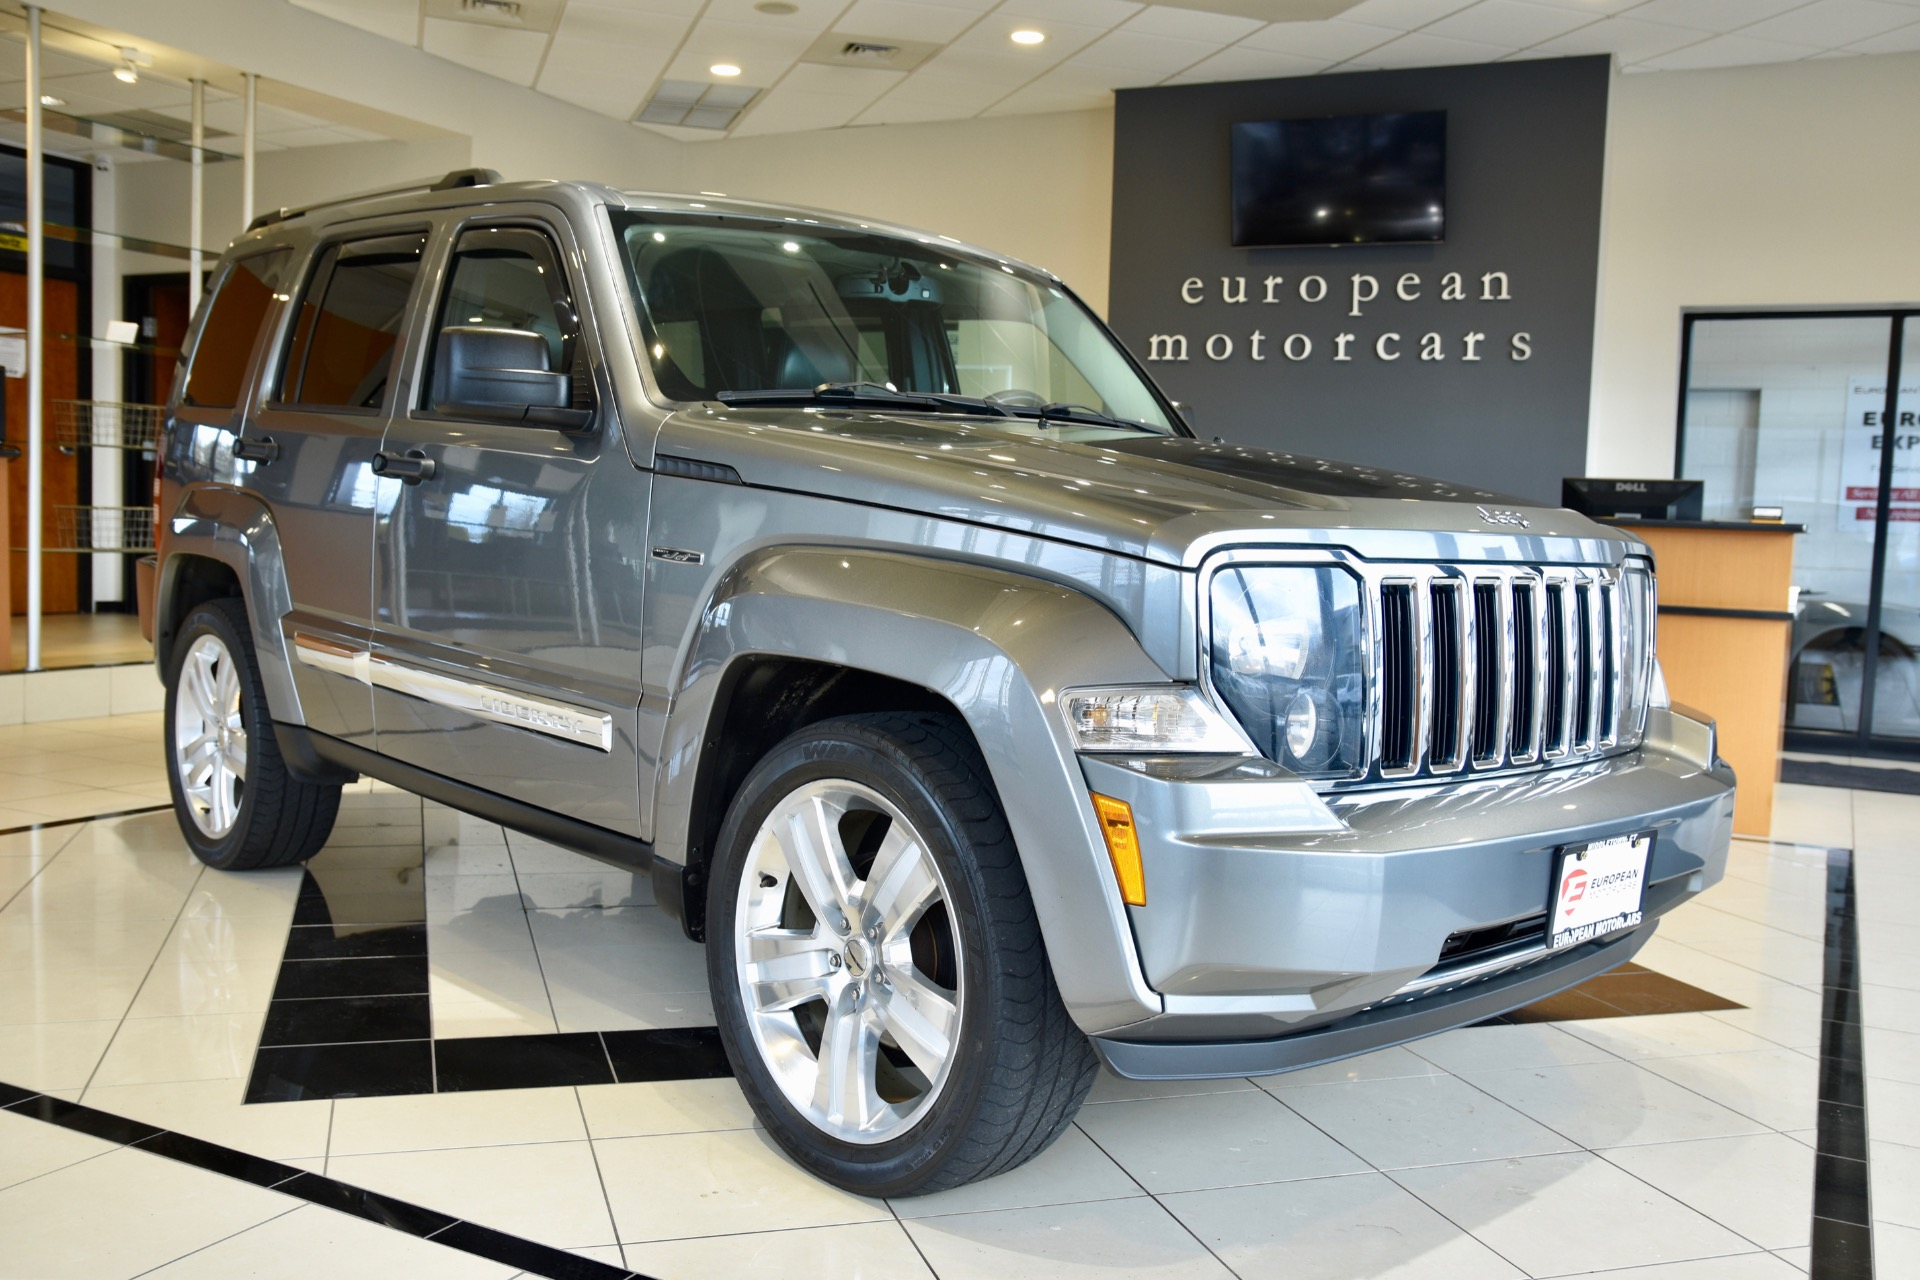 2012 jeep liberty jet edition for sale near middletown ct ct jeep dealer stock 204213. Black Bedroom Furniture Sets. Home Design Ideas